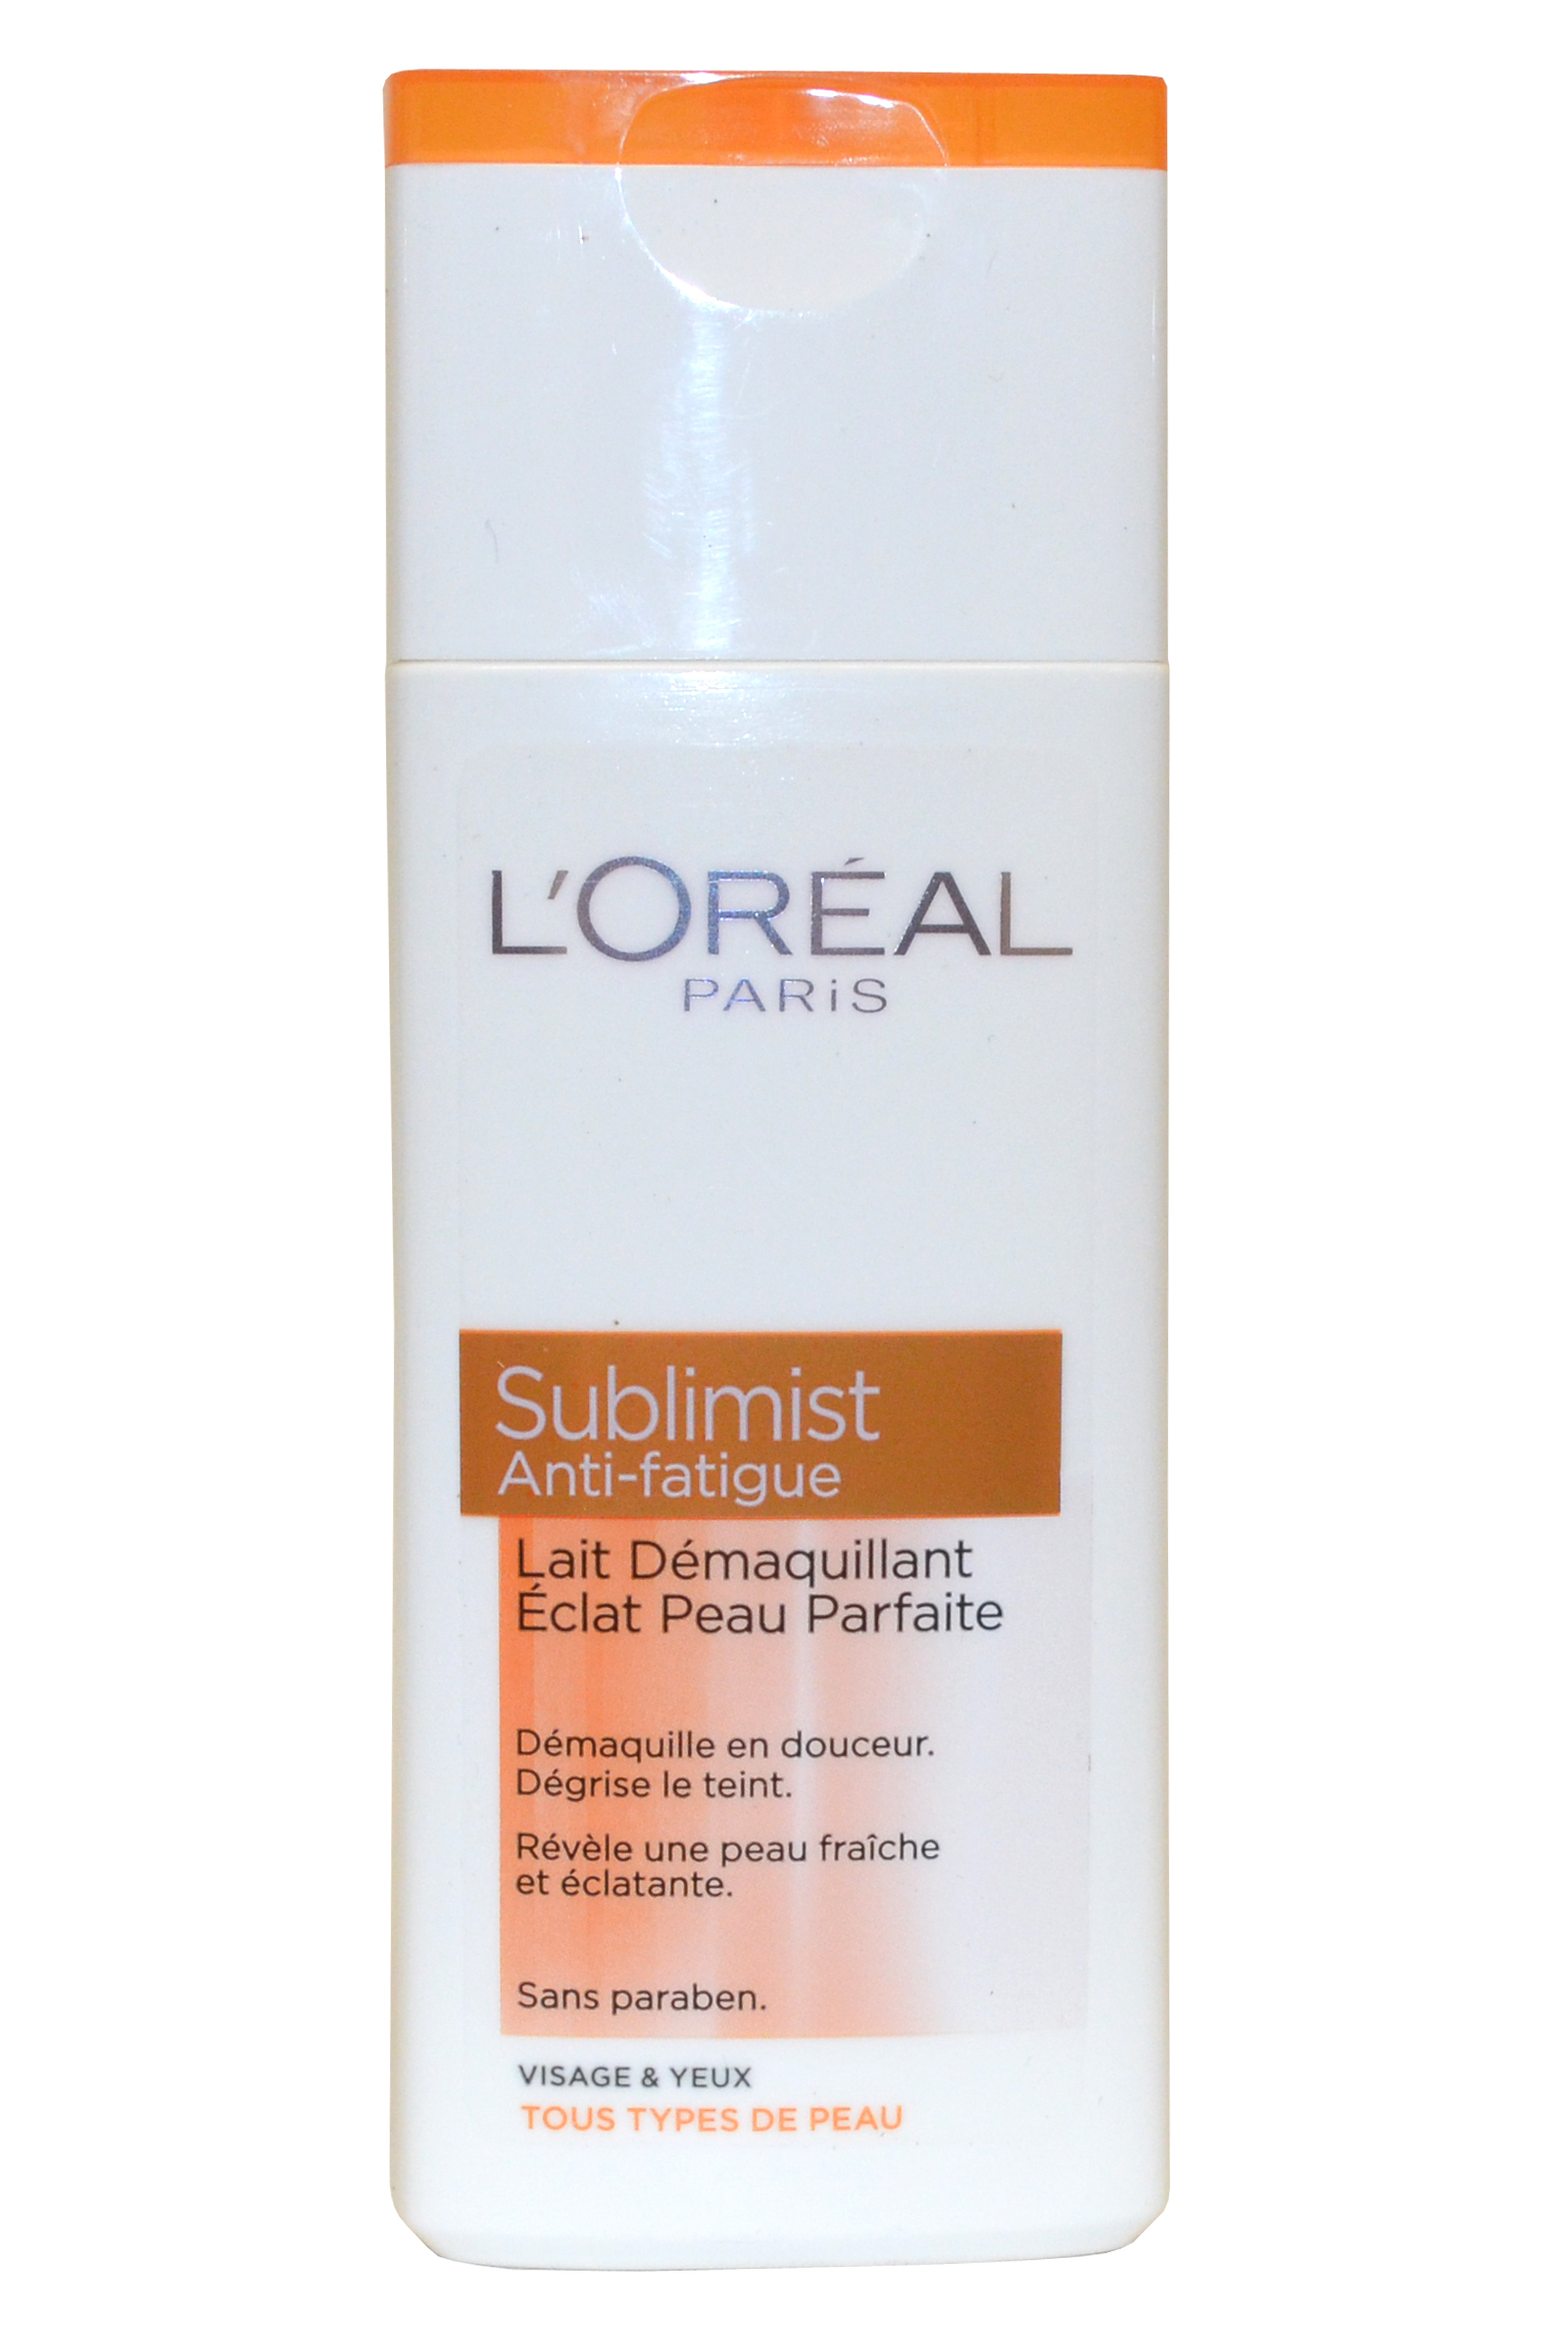 L Oreal Paris Sublimist by L'Oreal Cleansing Milk 200ml Face and Eyes All Skin Types